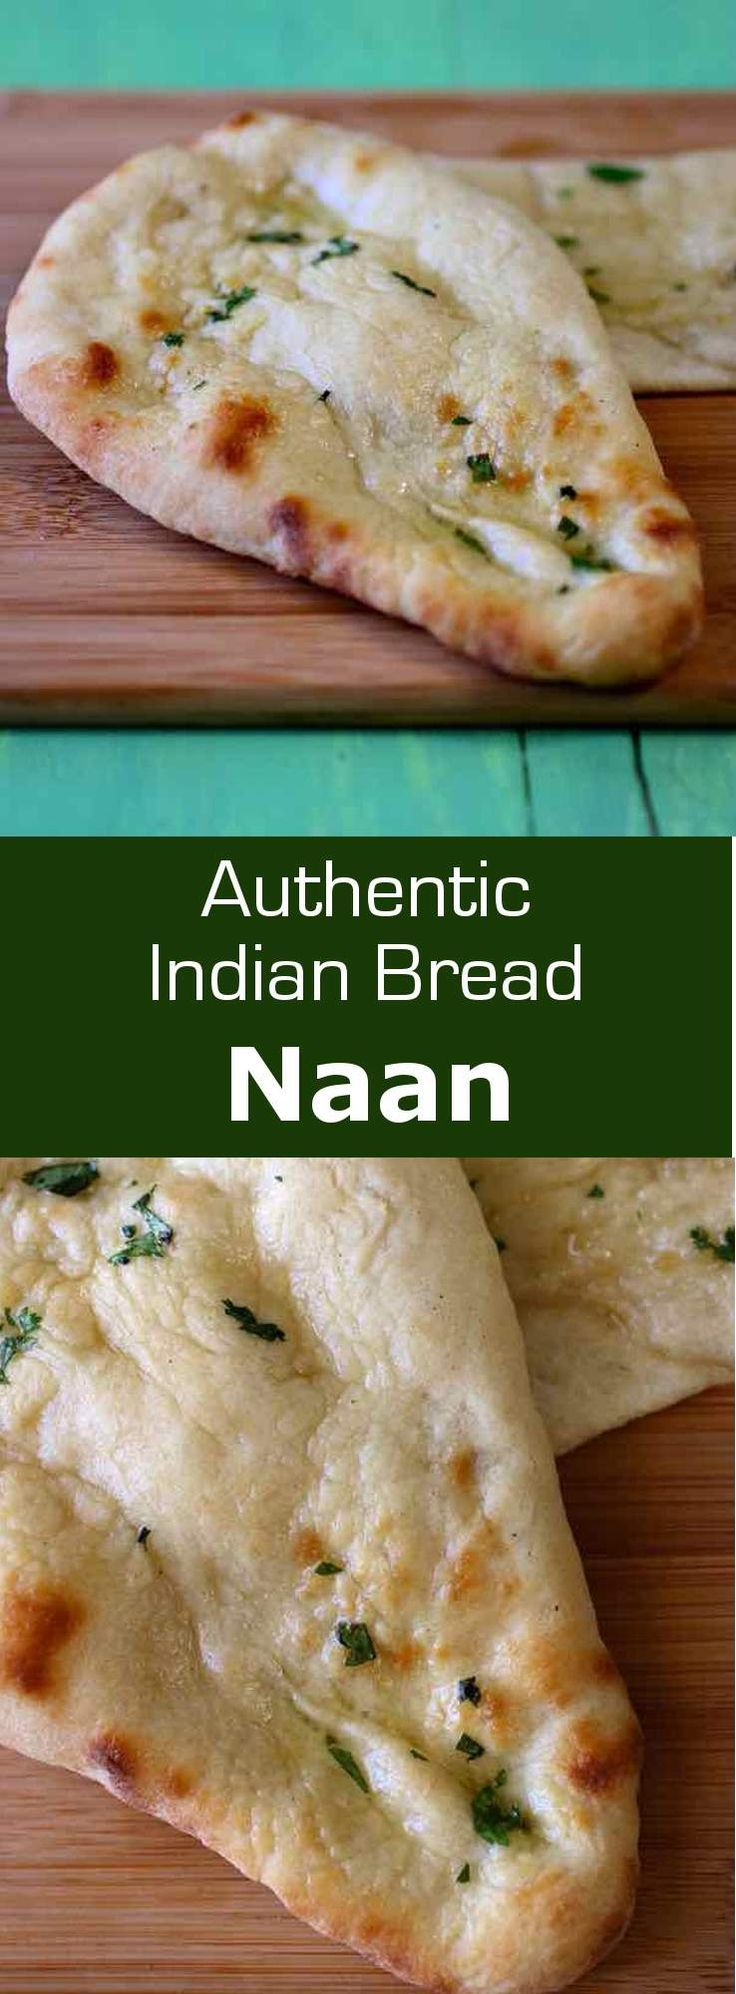 Yummy Naan bread recipe!